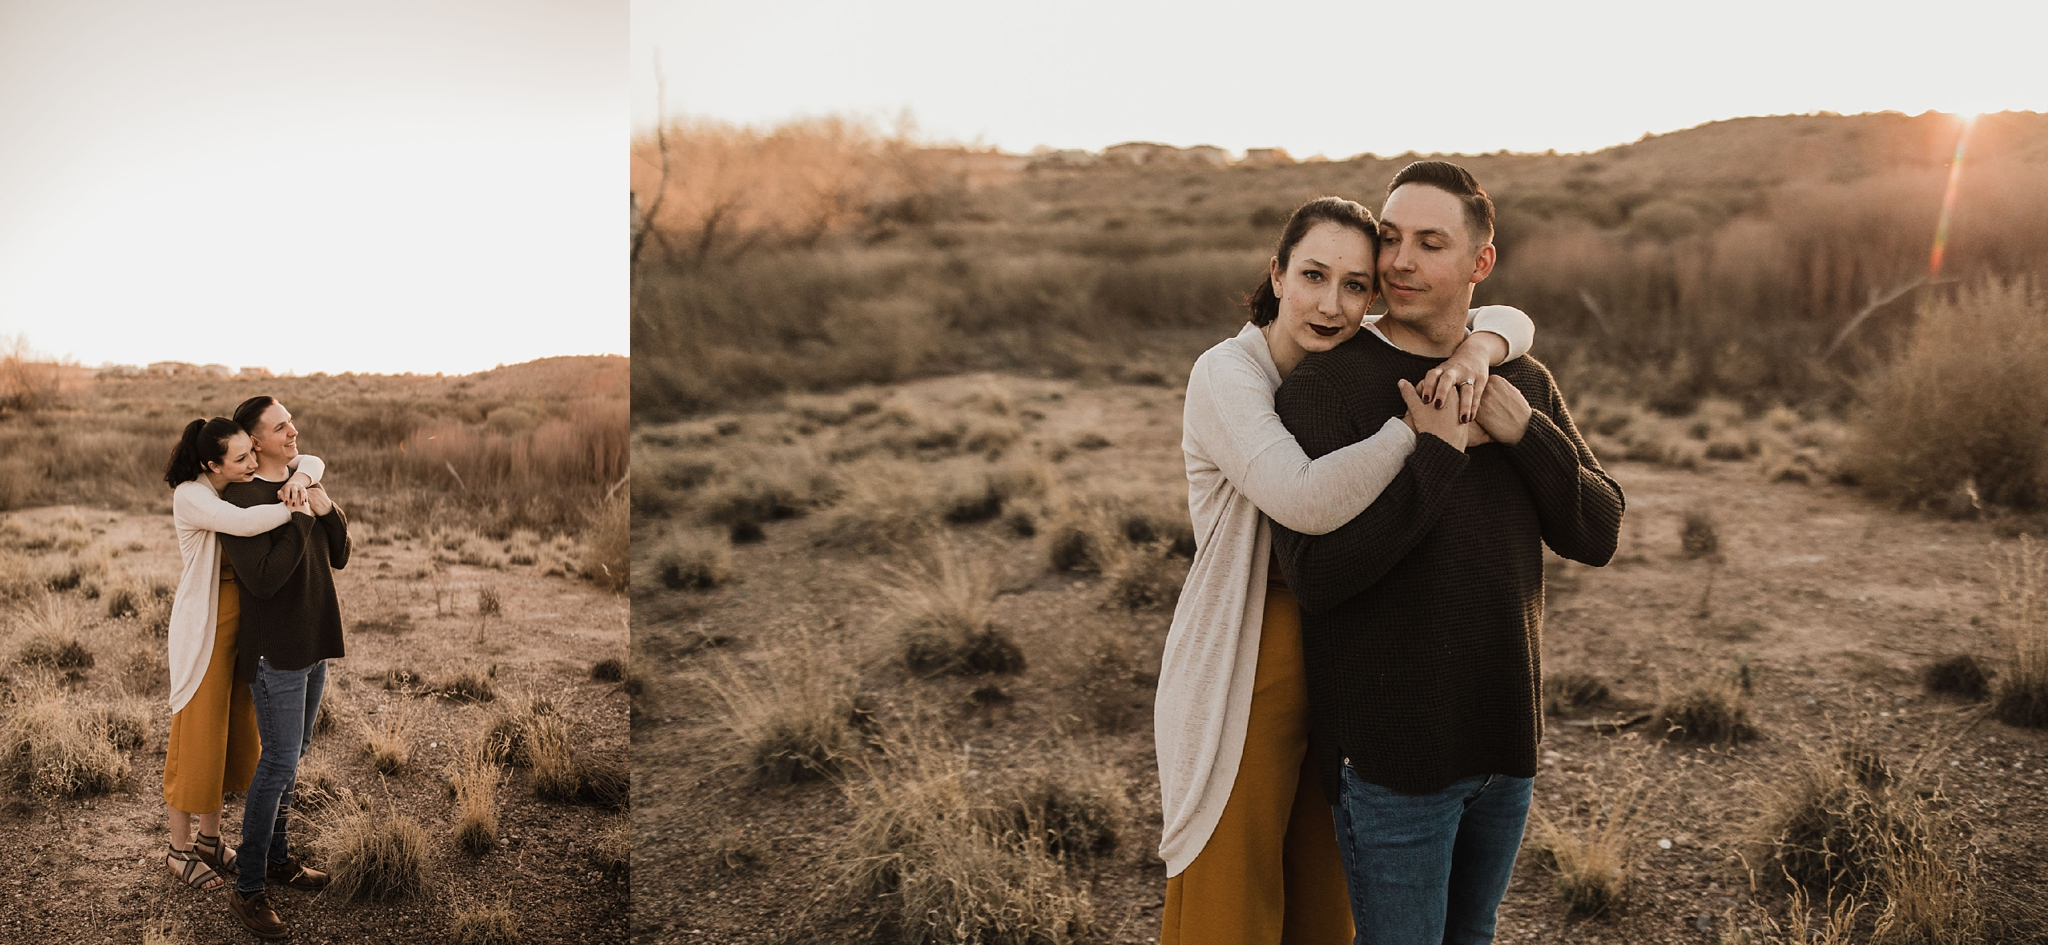 Alicia+lucia+photography+-+albuquerque+wedding+photographer+-+santa+fe+wedding+photography+-+new+mexico+wedding+photographer+-+new+mexico+wedding+-+engagement+-+new+mexico+engagemnt+-+outdoor+engagement_0011.jpg